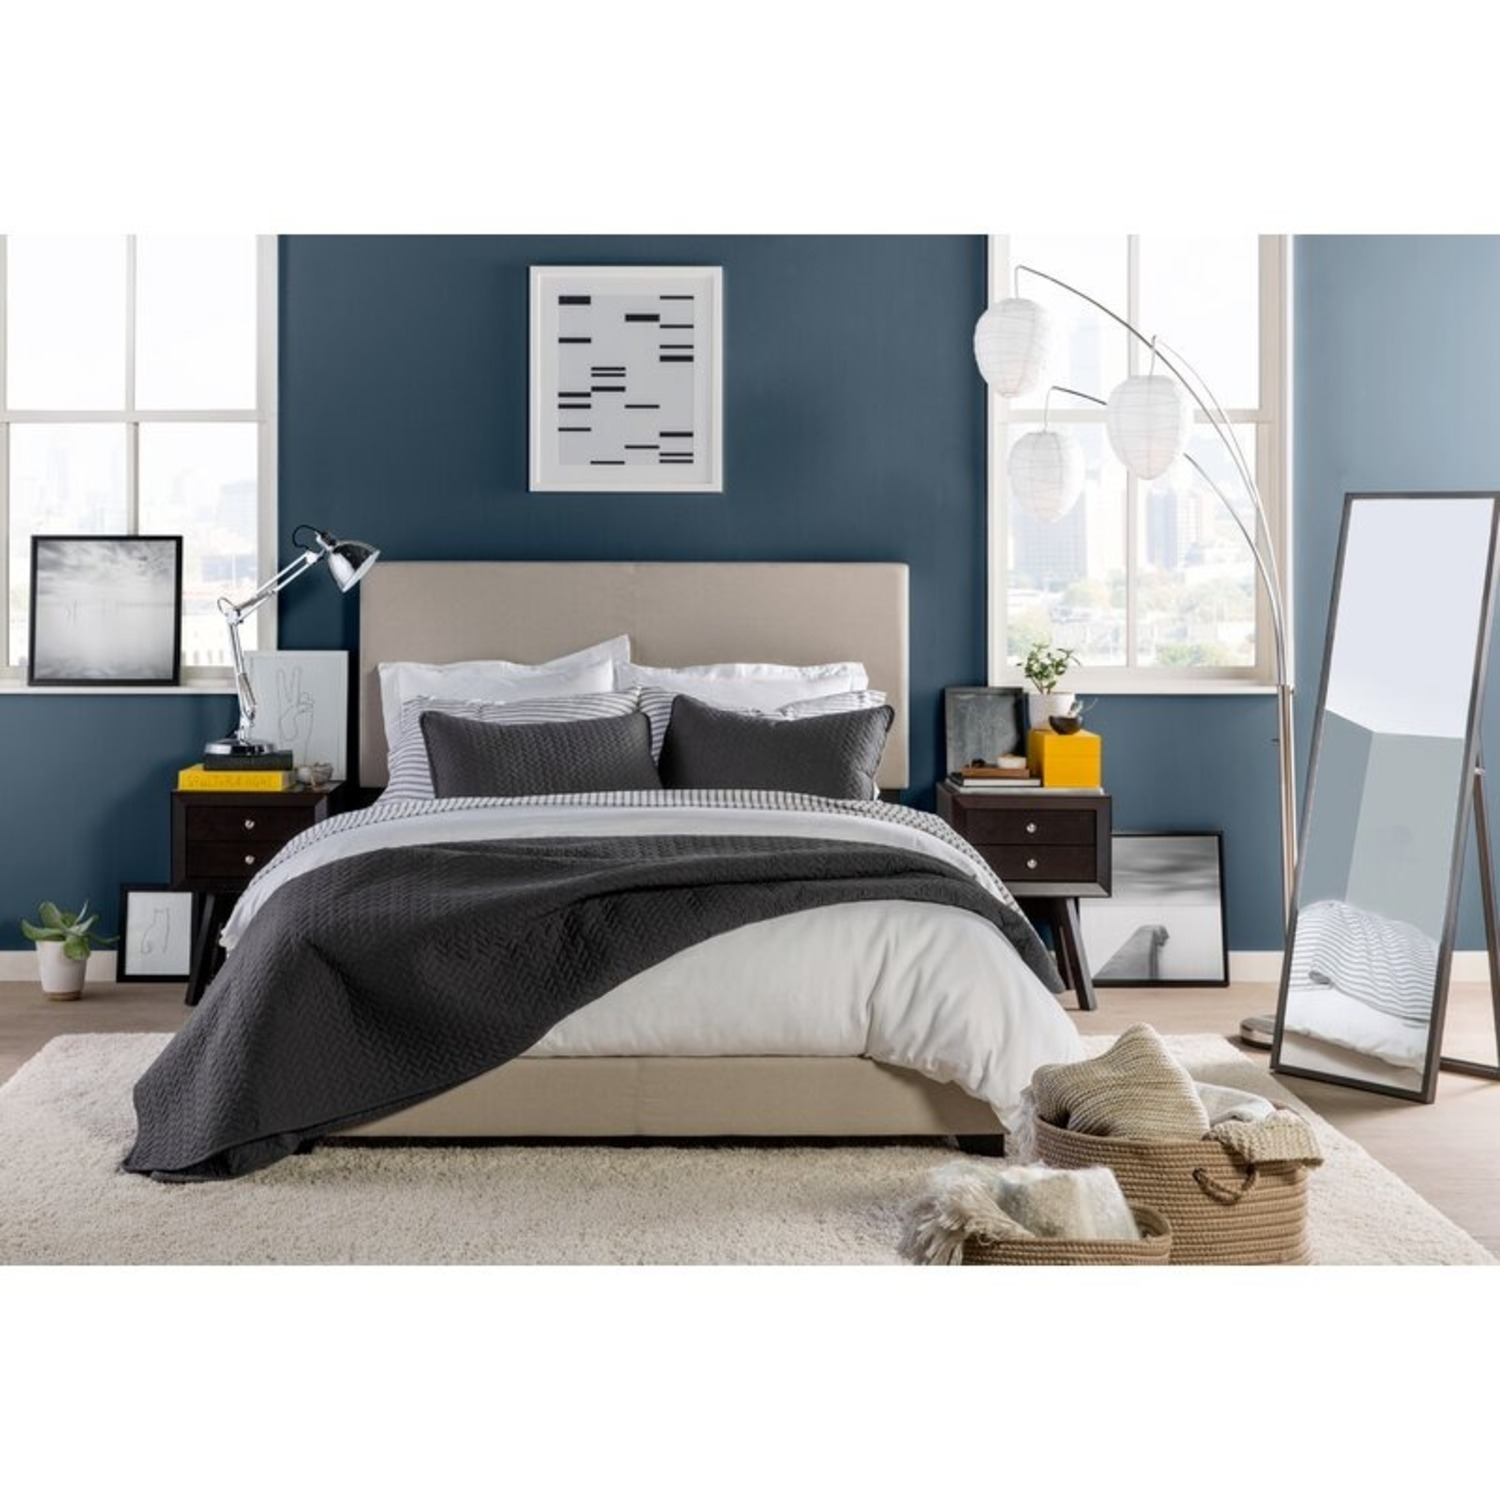 Zipcode Design Upholstered Low Profile Full Bed Frame - image-1